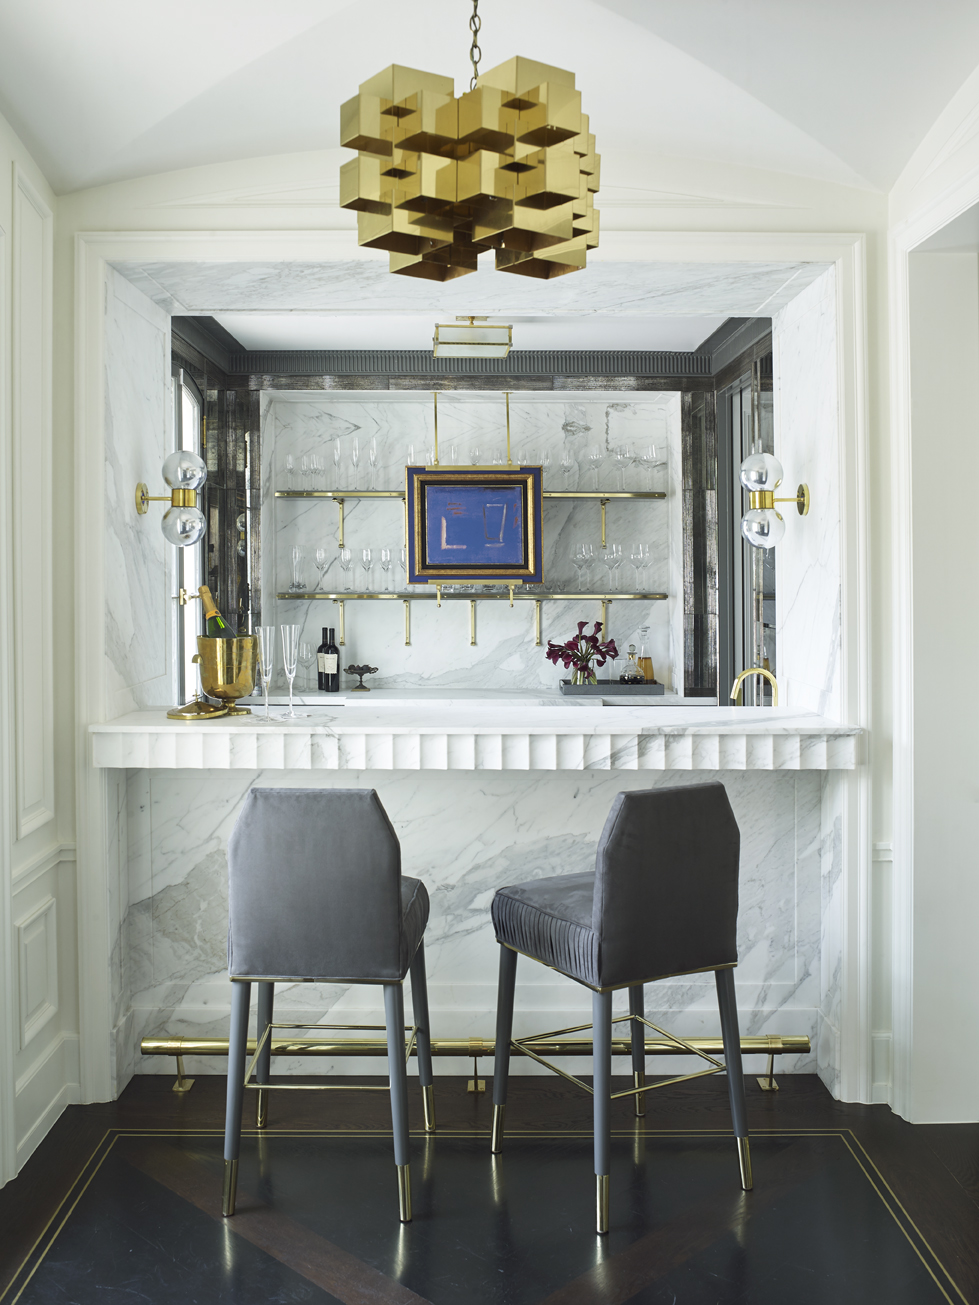 Because the clients enjoy entertaining, it was important for the design of the bar to aptly reflect the clients and their style. Palaciosdesigned a marble alcove for the bar and carved scalloping into the bar's edge. Antique mirrors and reededmercury glass flank the bar shelving.